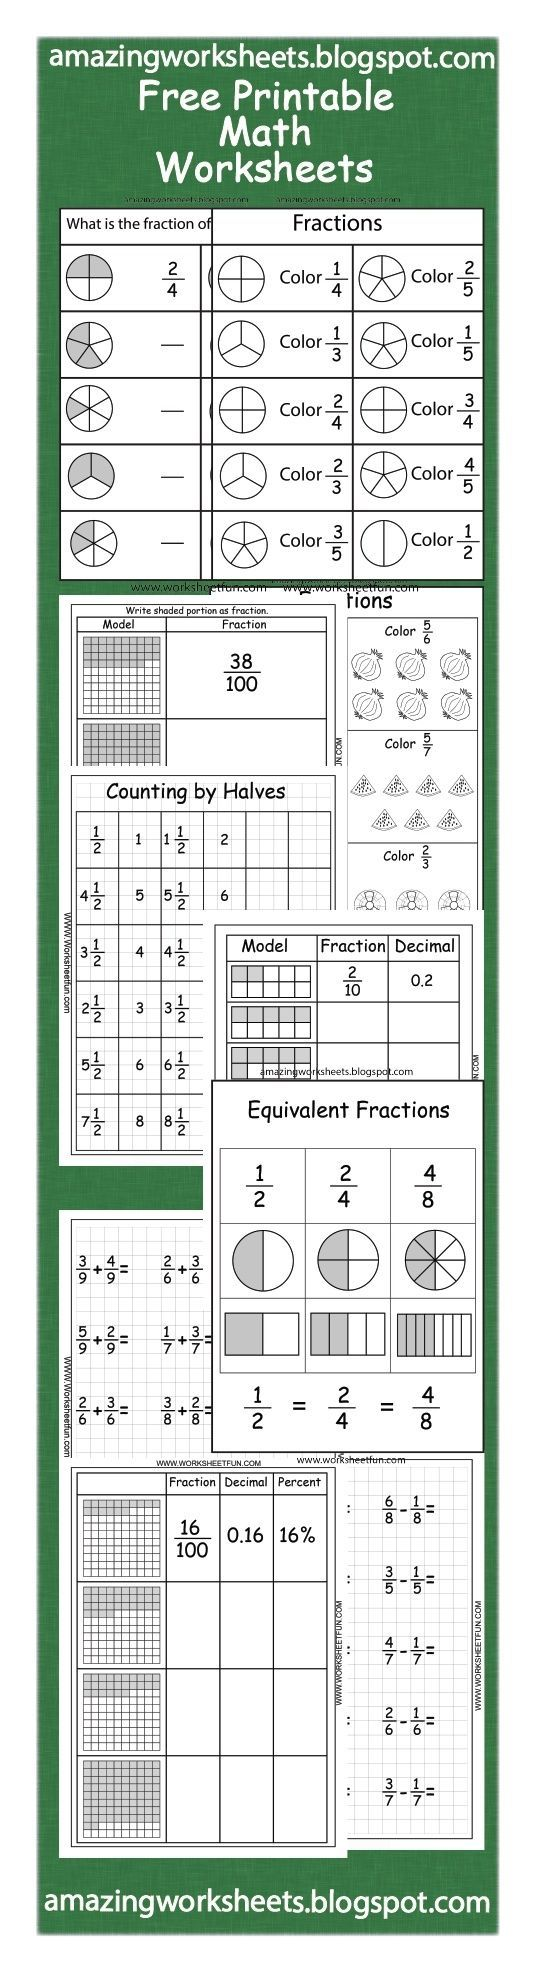 Color the fractions worksheets - Free Printable Fractions Worksheets By Valeria